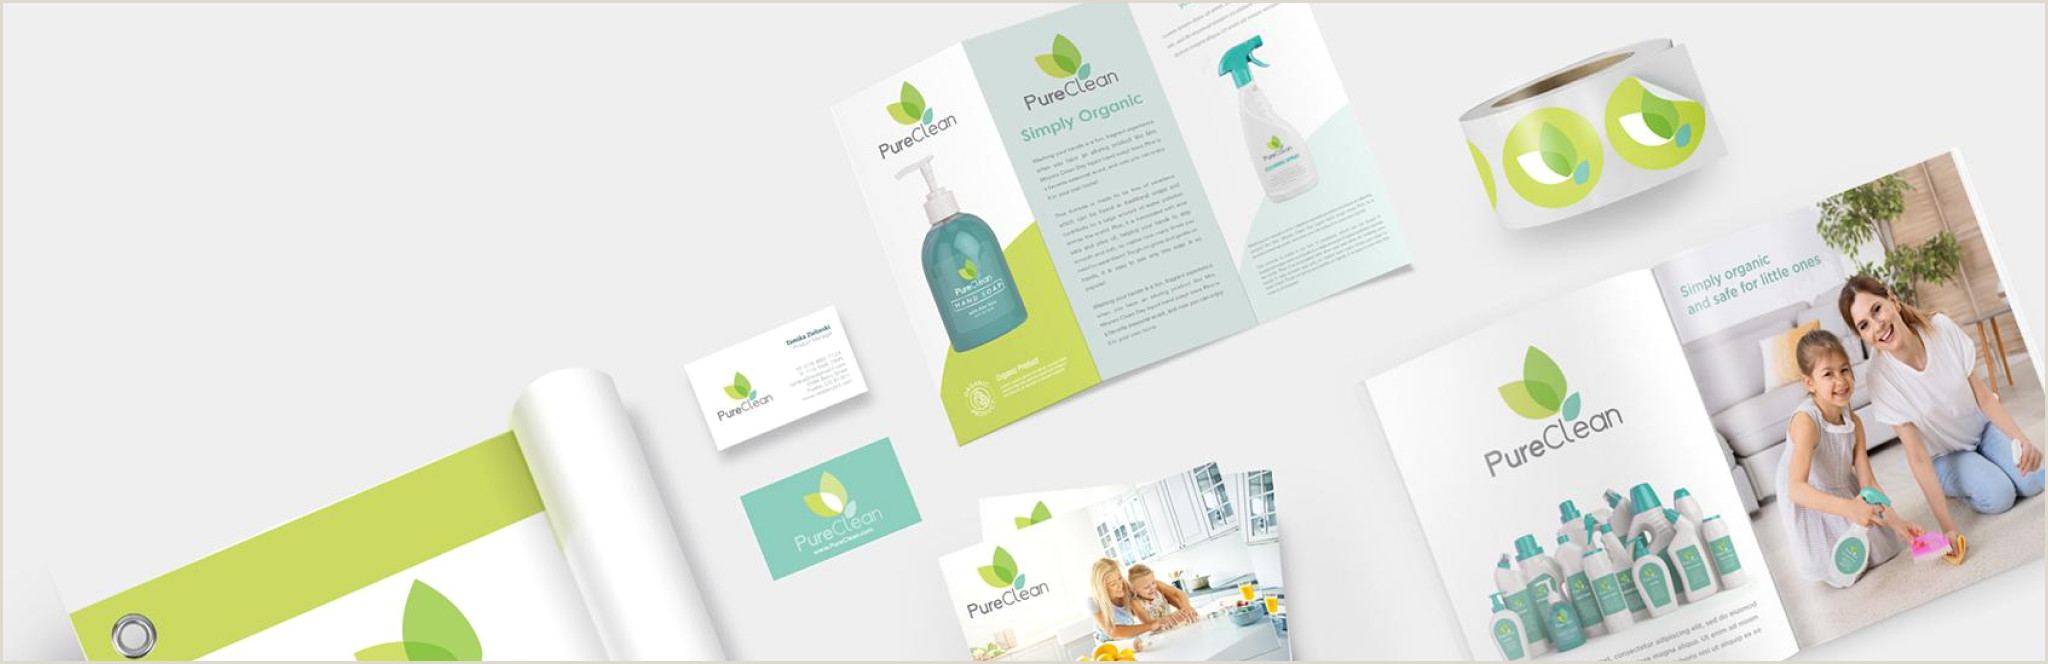 Business Cards For Web Developers Printplace High Quality Line Printing Services